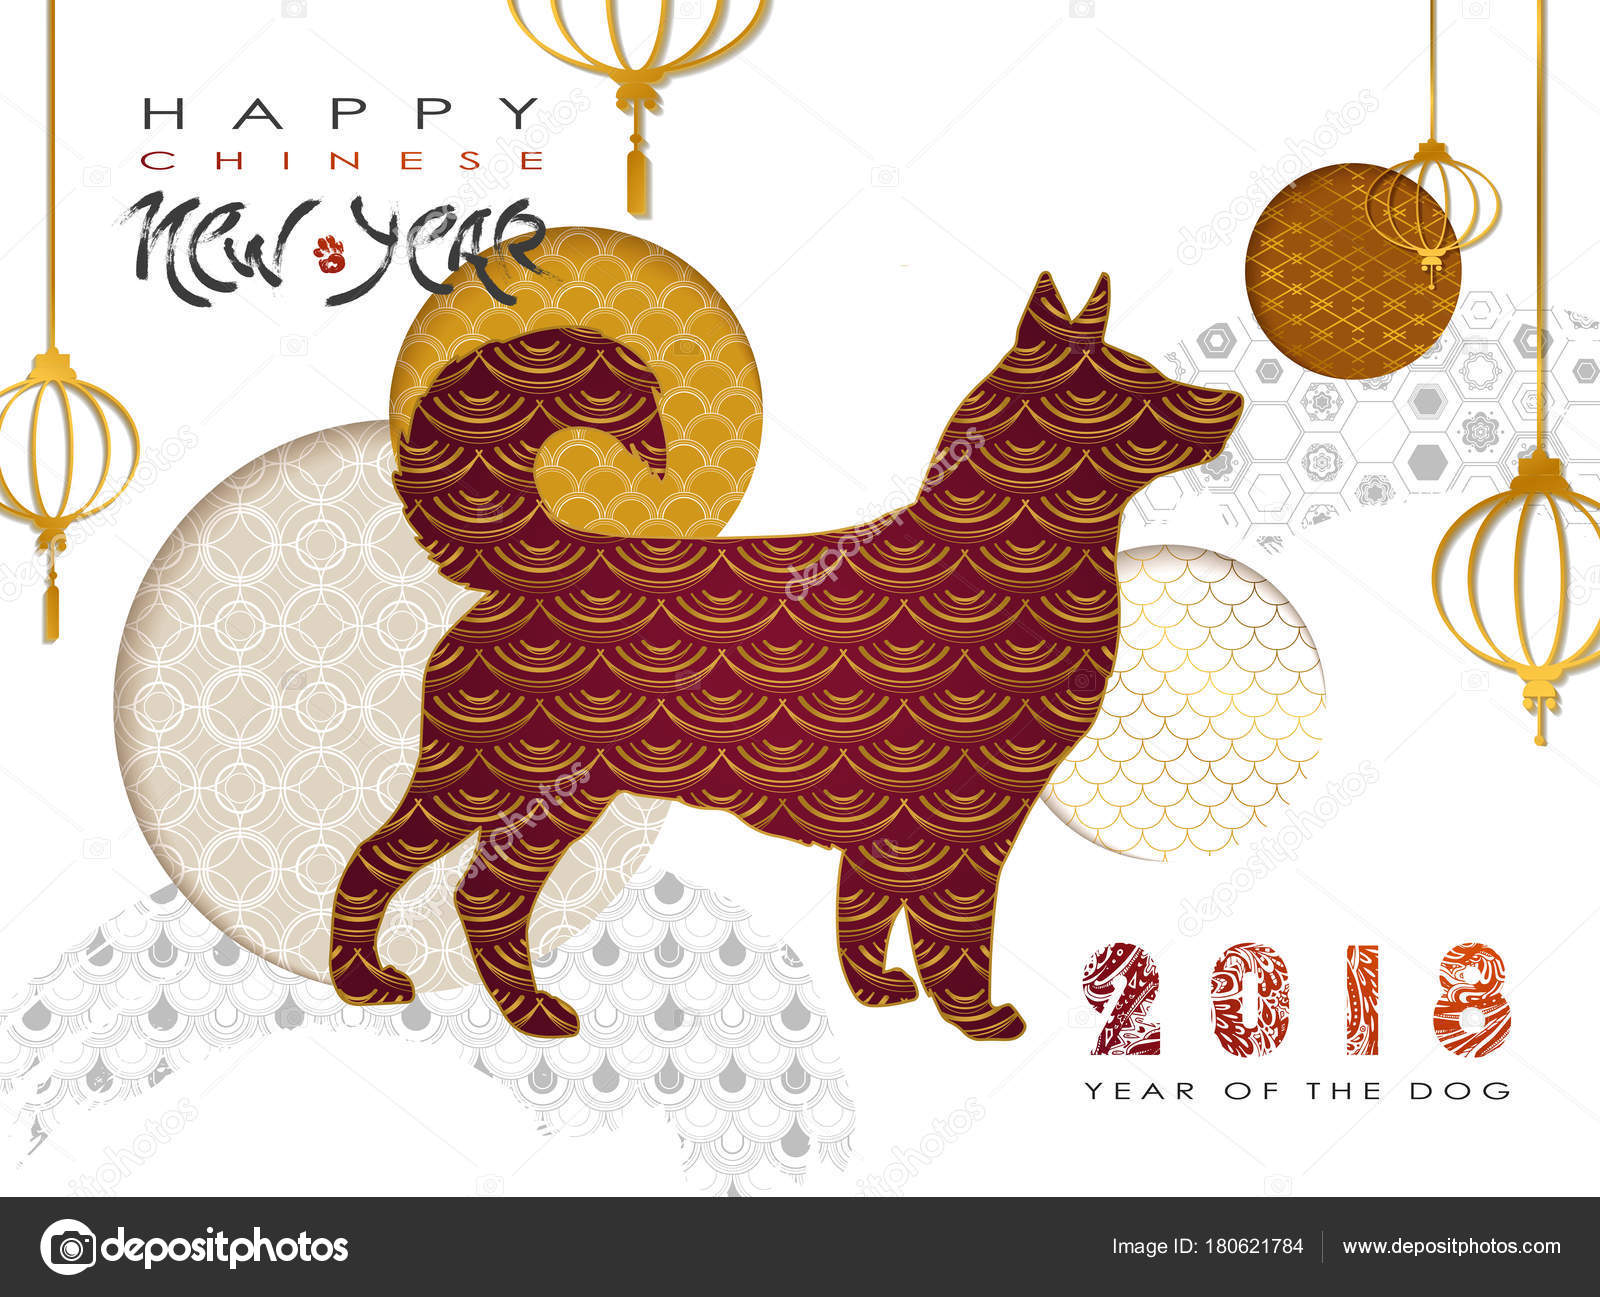 chinese new year 2018 zodiac dog happy new year card pattern art with dog paper cutting hand drawn vector illustration chinese traditional design